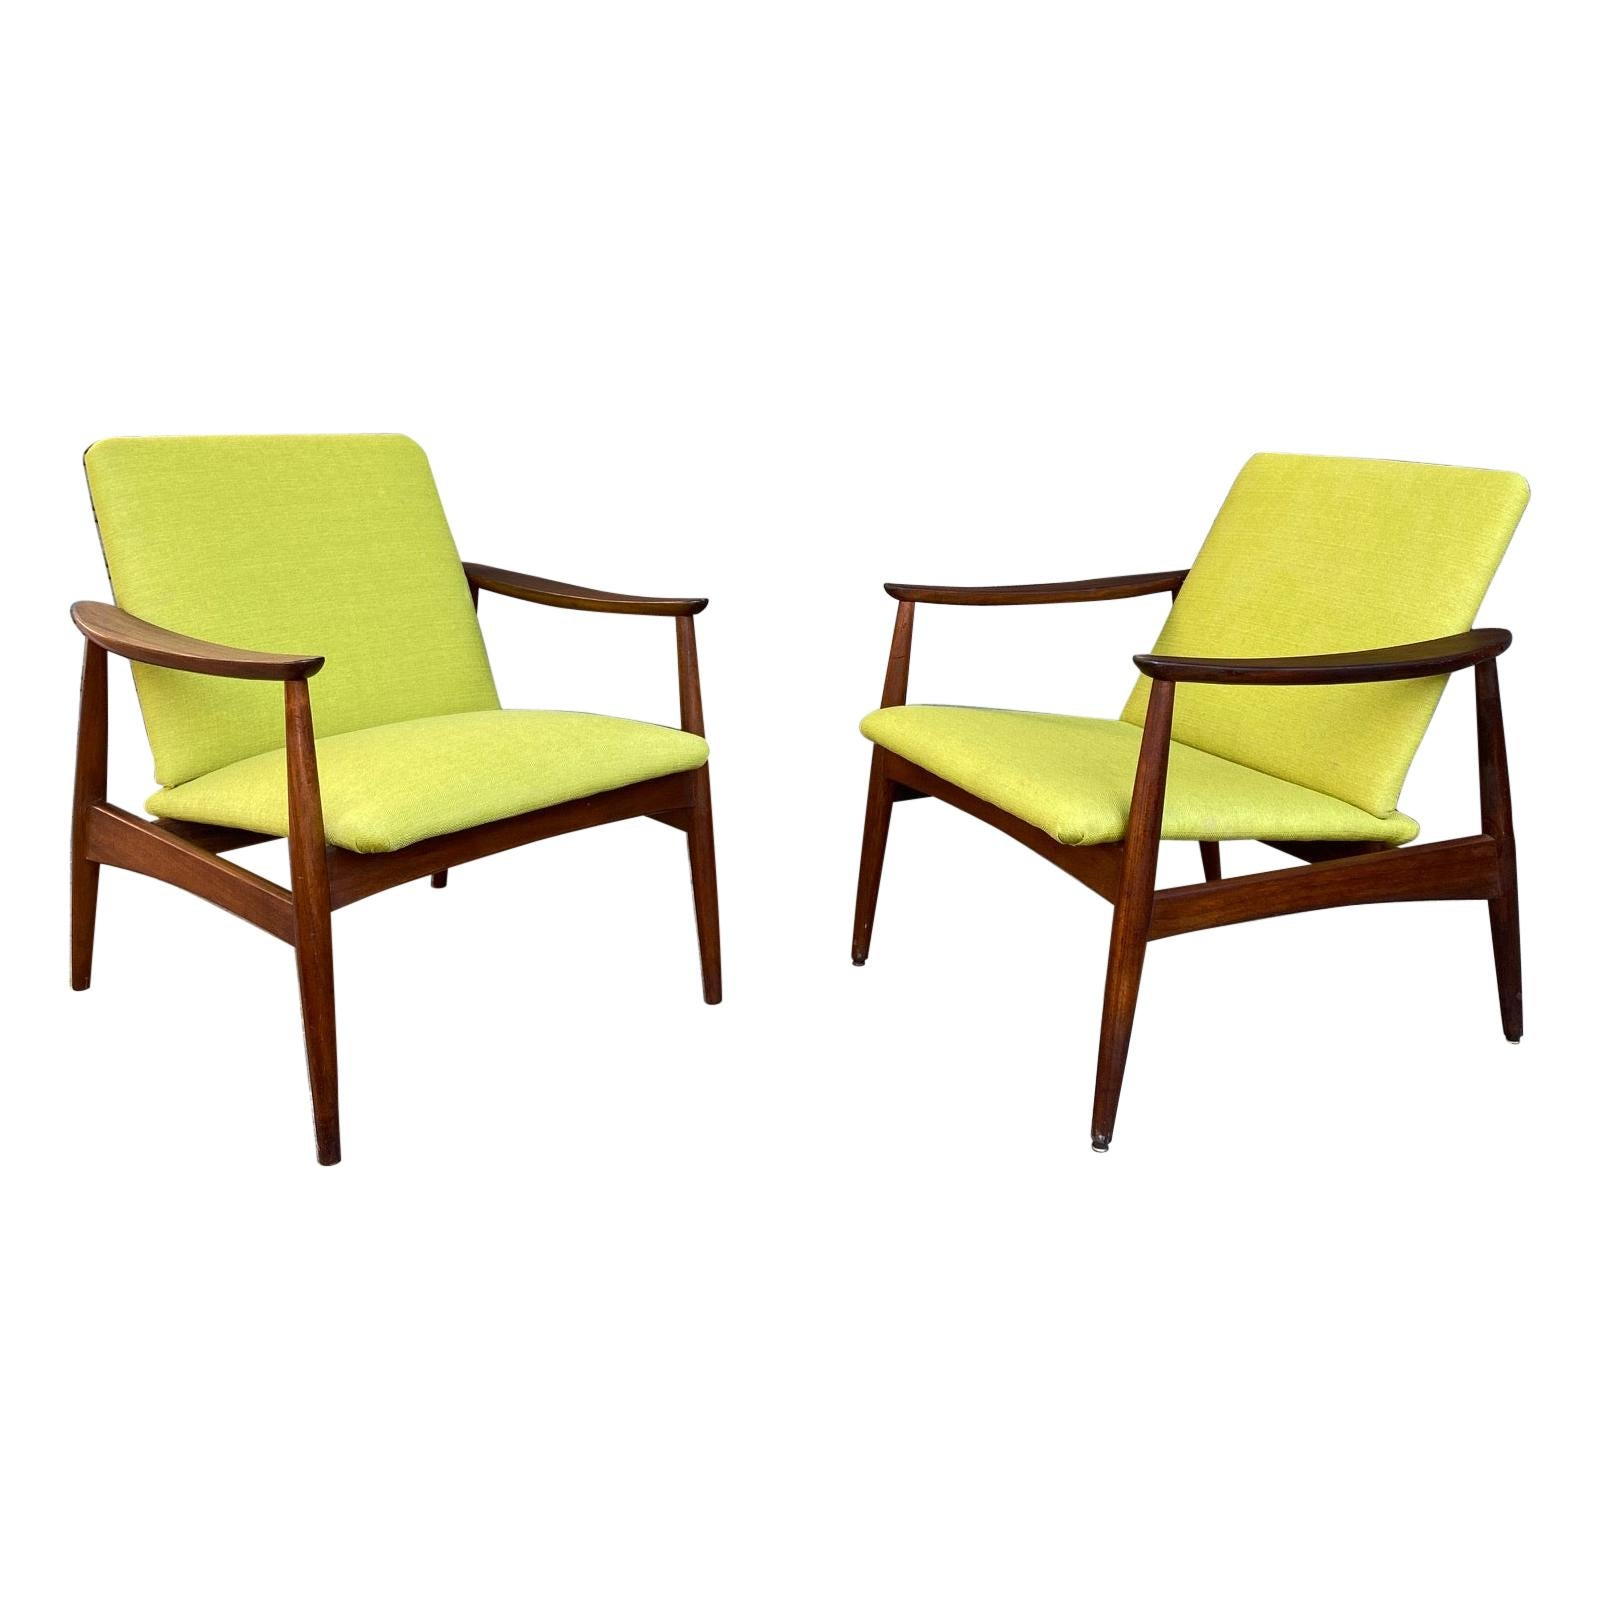 Pair of Armchairs, Portugal, 1960s